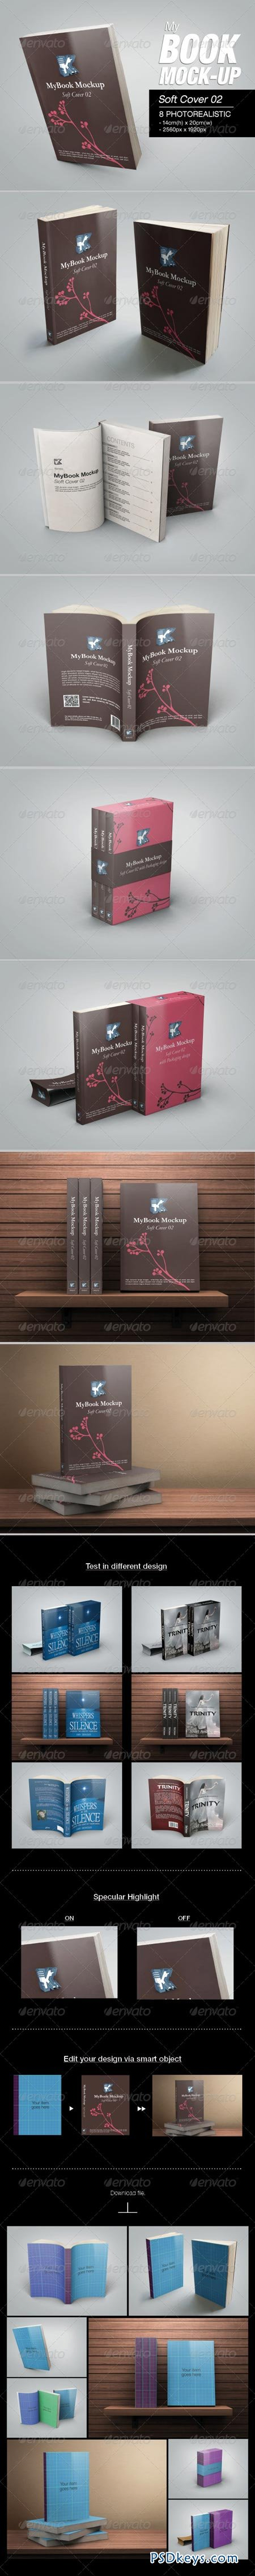 MyBook Mock-up - Soft Cover 02 6828697